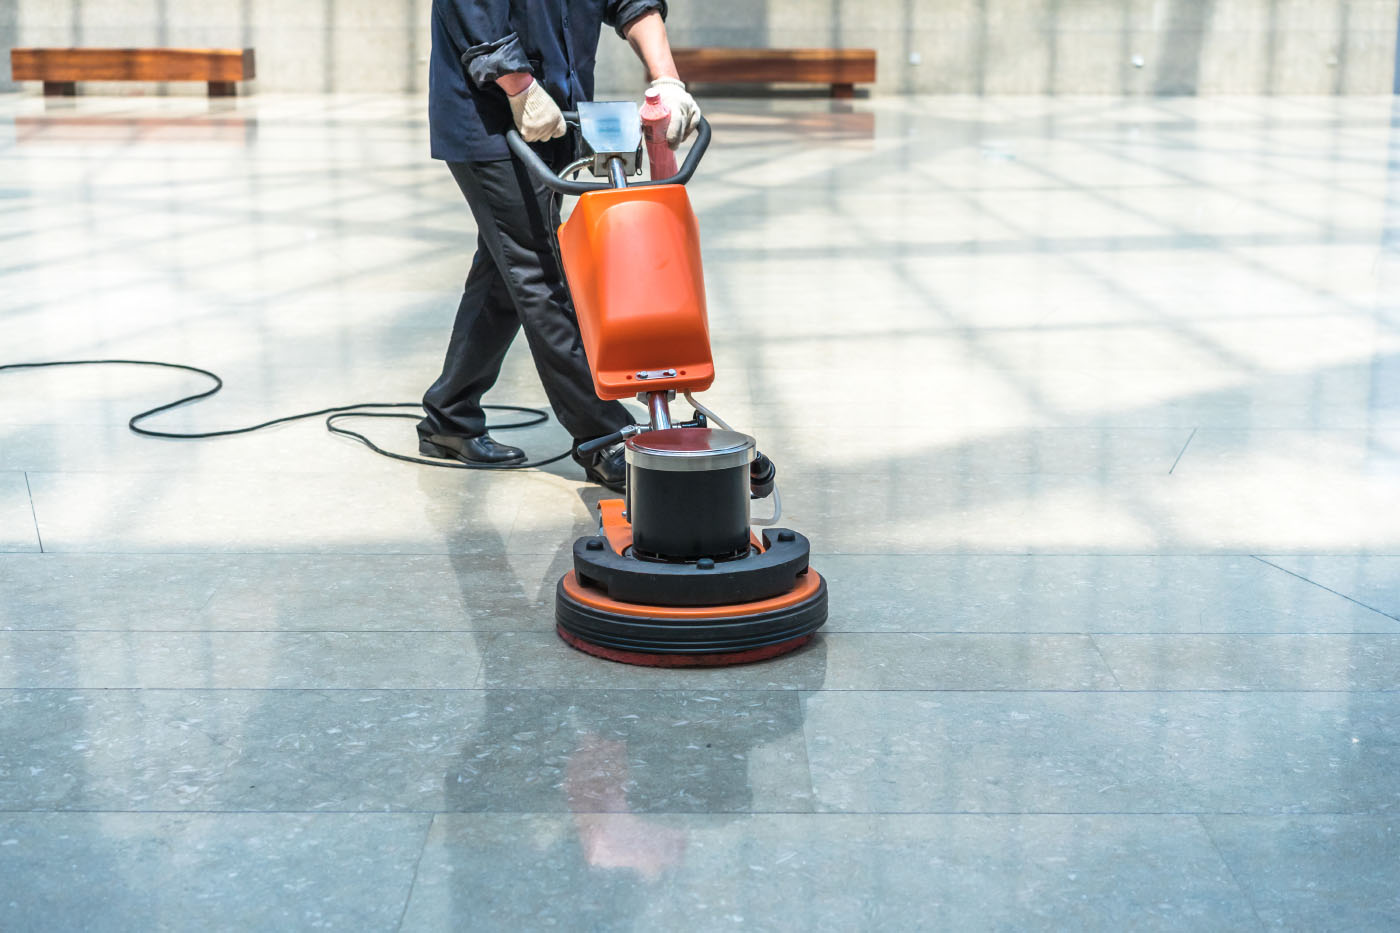 Man using floor scrubber-dryer